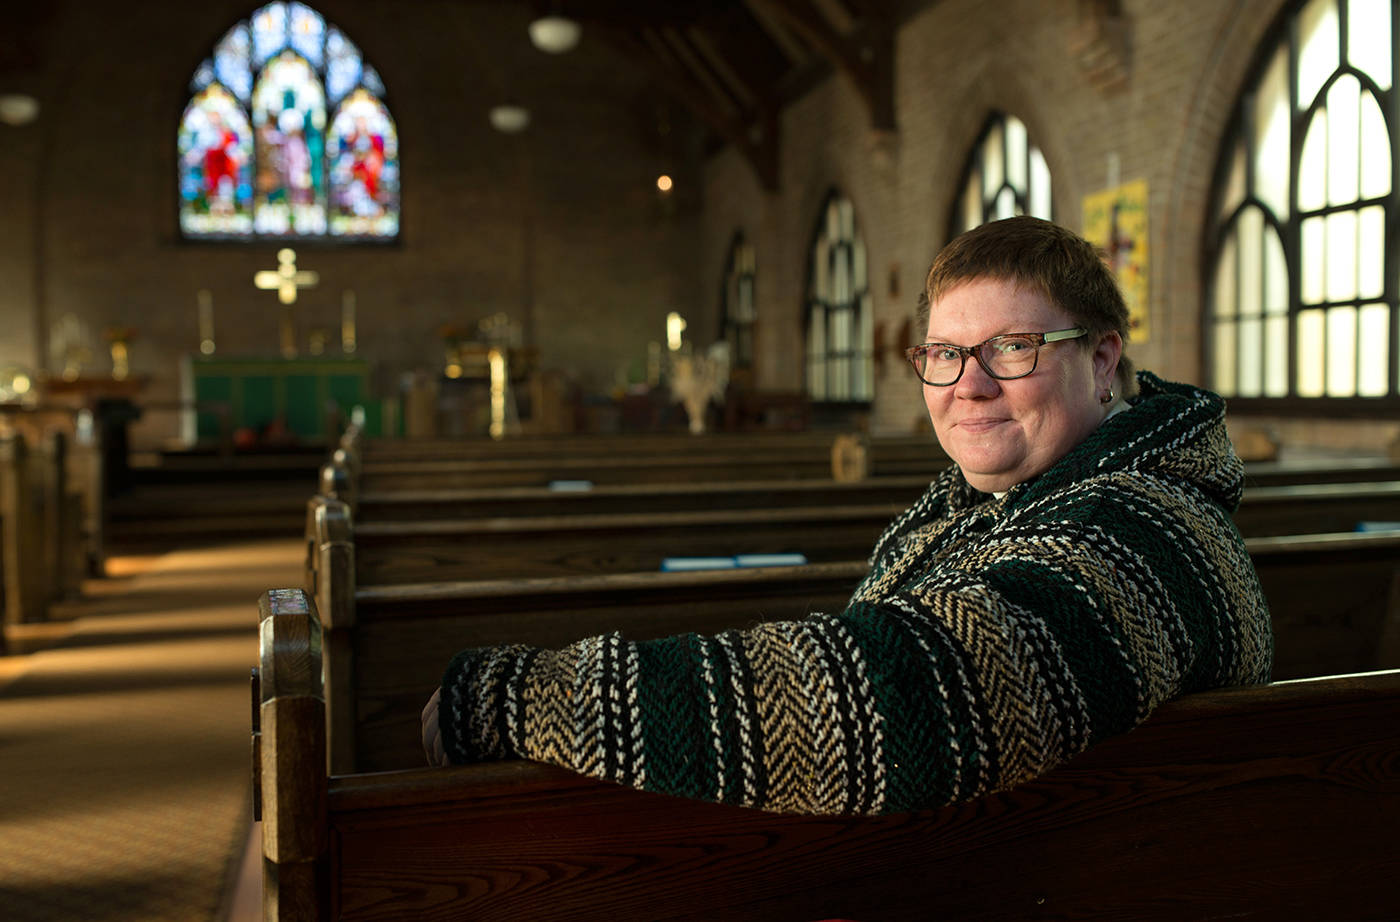 """Reverend Andrea Brennan is one of the most recognizable faces around town for one particular reason – she's always smiling. For almost three years she has served as the minister of the Christ Church Anglican in Fernie. Behind the everlasting smile is a person confident in what they believe in and not afraid to challenge the status quo. Aside from breaking the stereotype by being a female minister, Brennan is also openly queer. She is also serving at a time when her denomination is considering marrying same-sex couples."" (Phil McLachlan/The Fernie Free Press)"